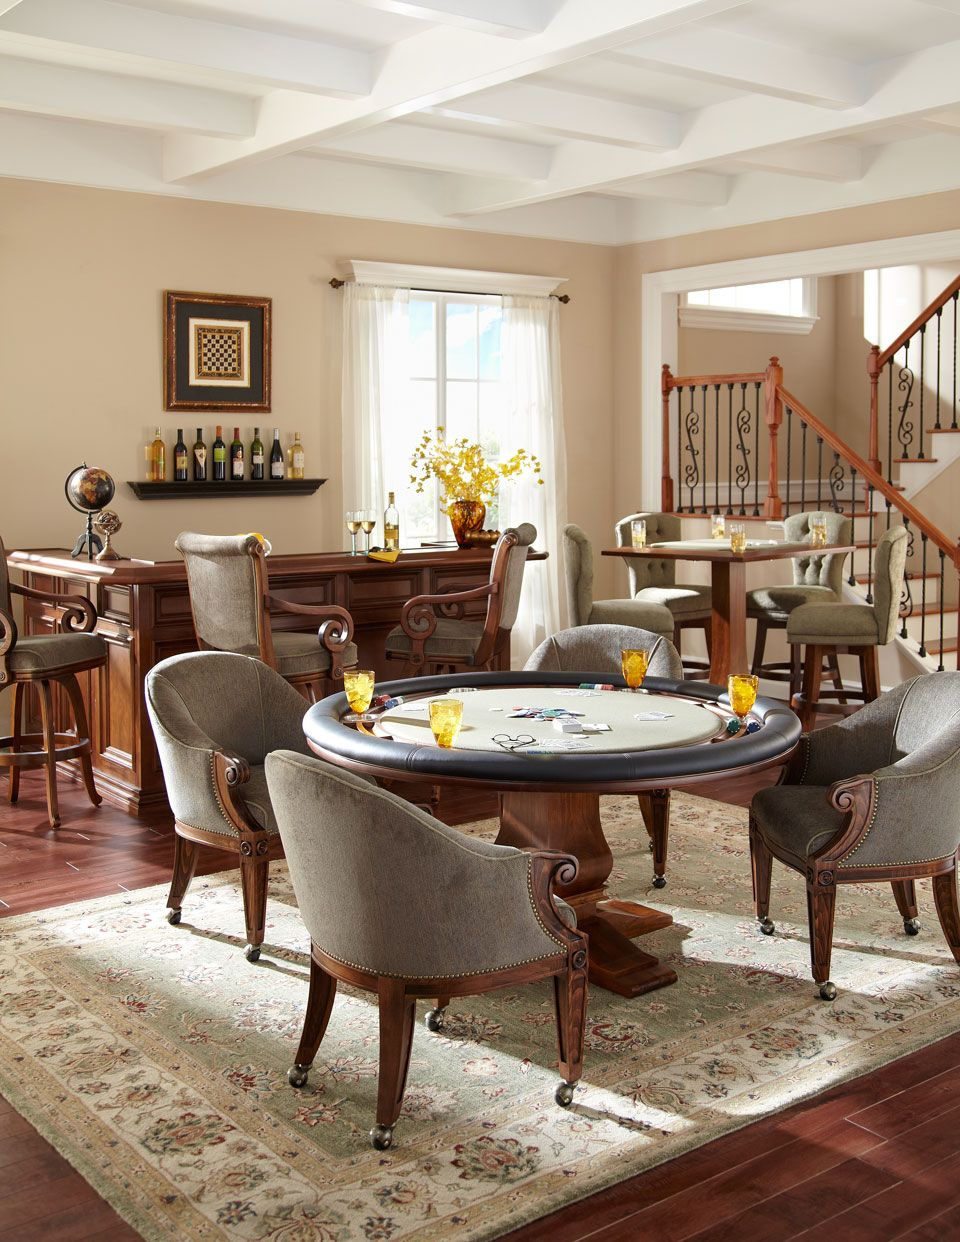 California House Game Room Game Table And Chairs Game Room Tables Game Room Furniture